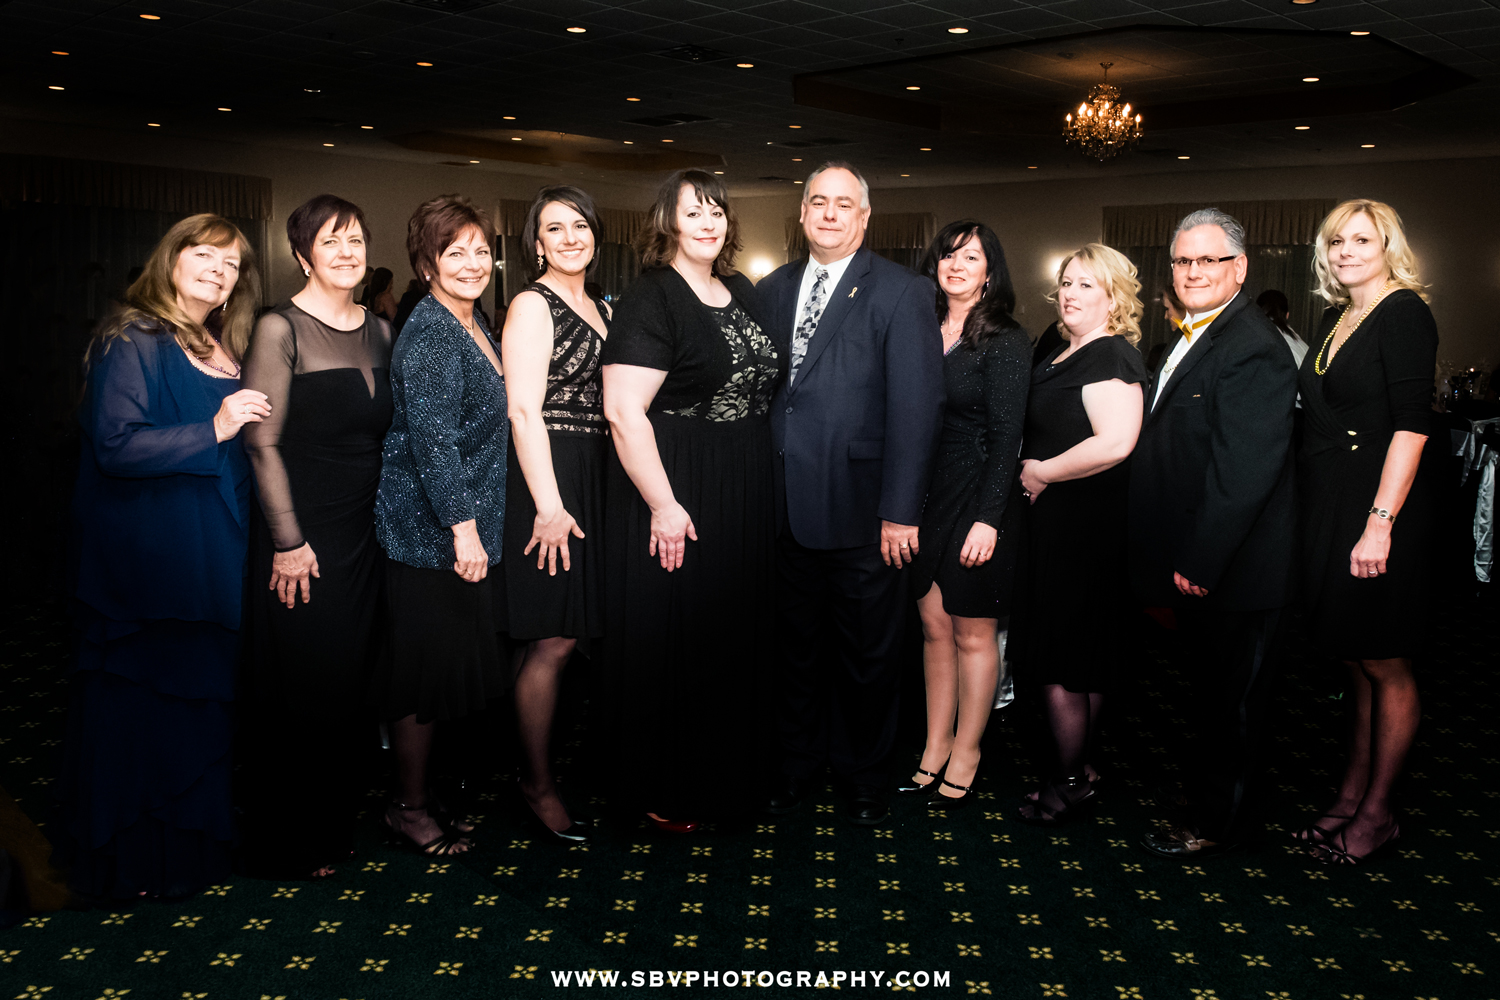 Northwest Indiana Cancer Kids Foundation board members pose for a group photograph.